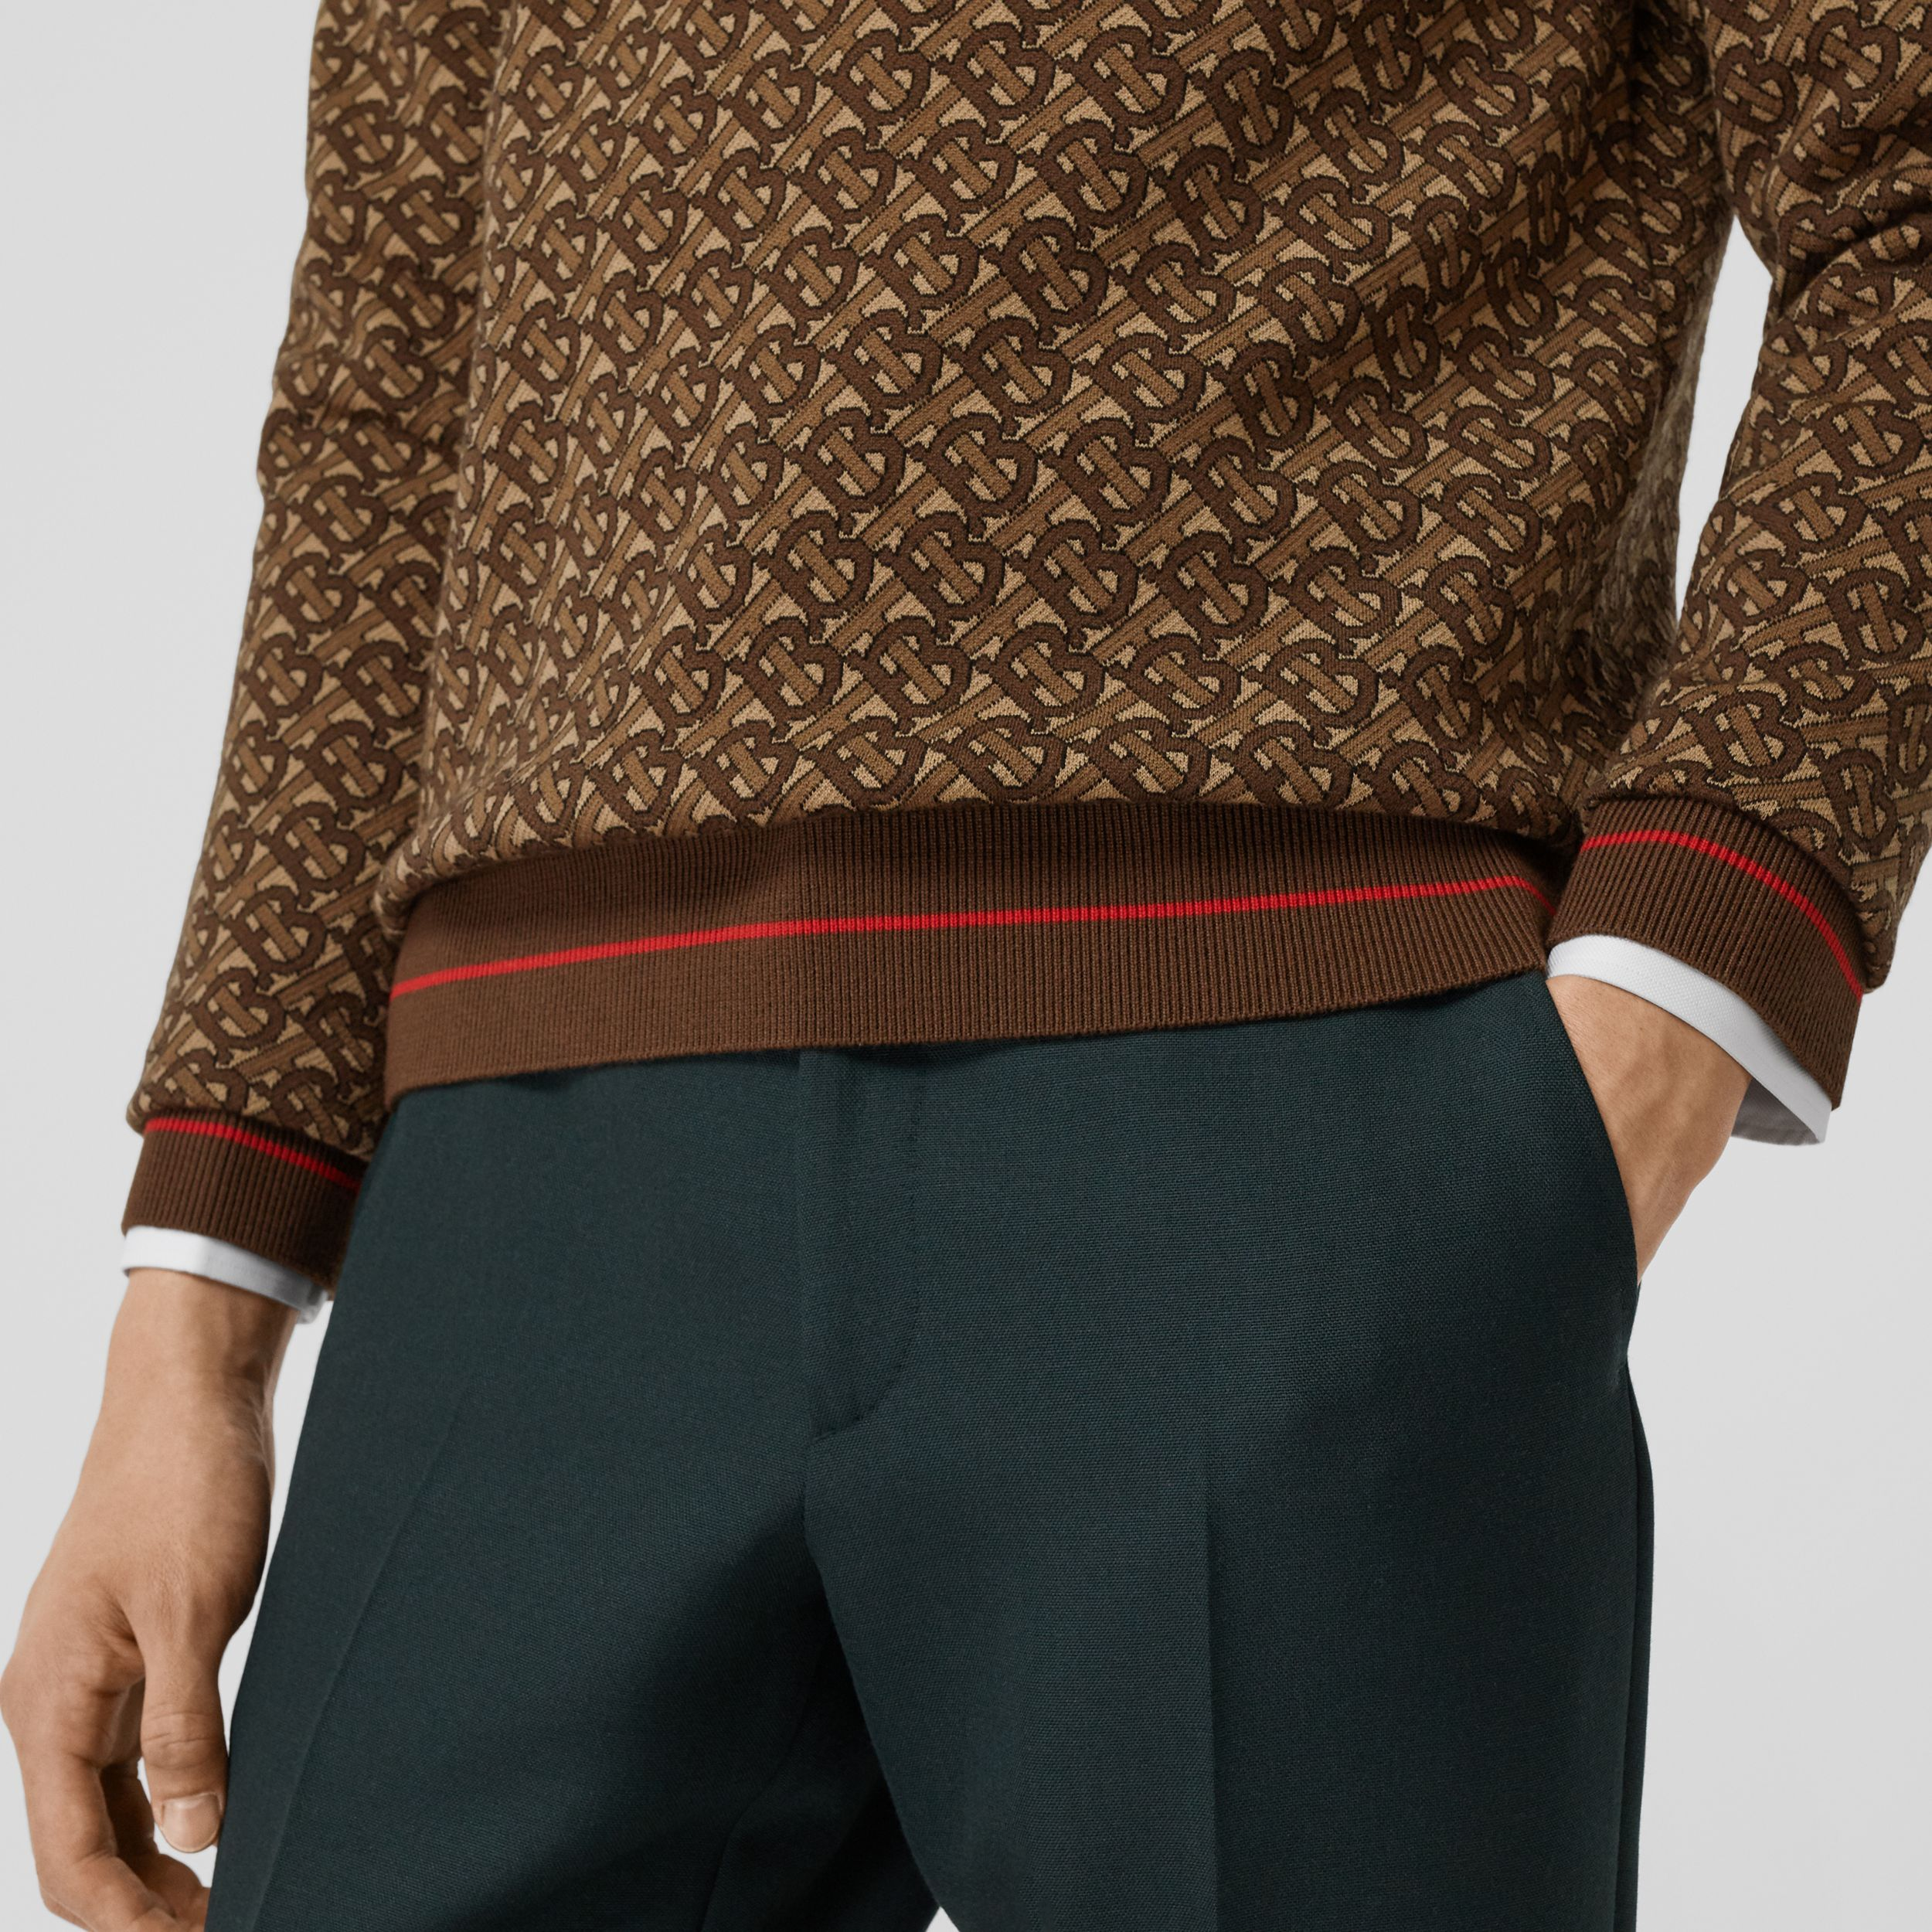 Monogram Merino Wool Jacquard Sweater in Bridle Brown - Men | Burberry Hong Kong S.A.R. - 2